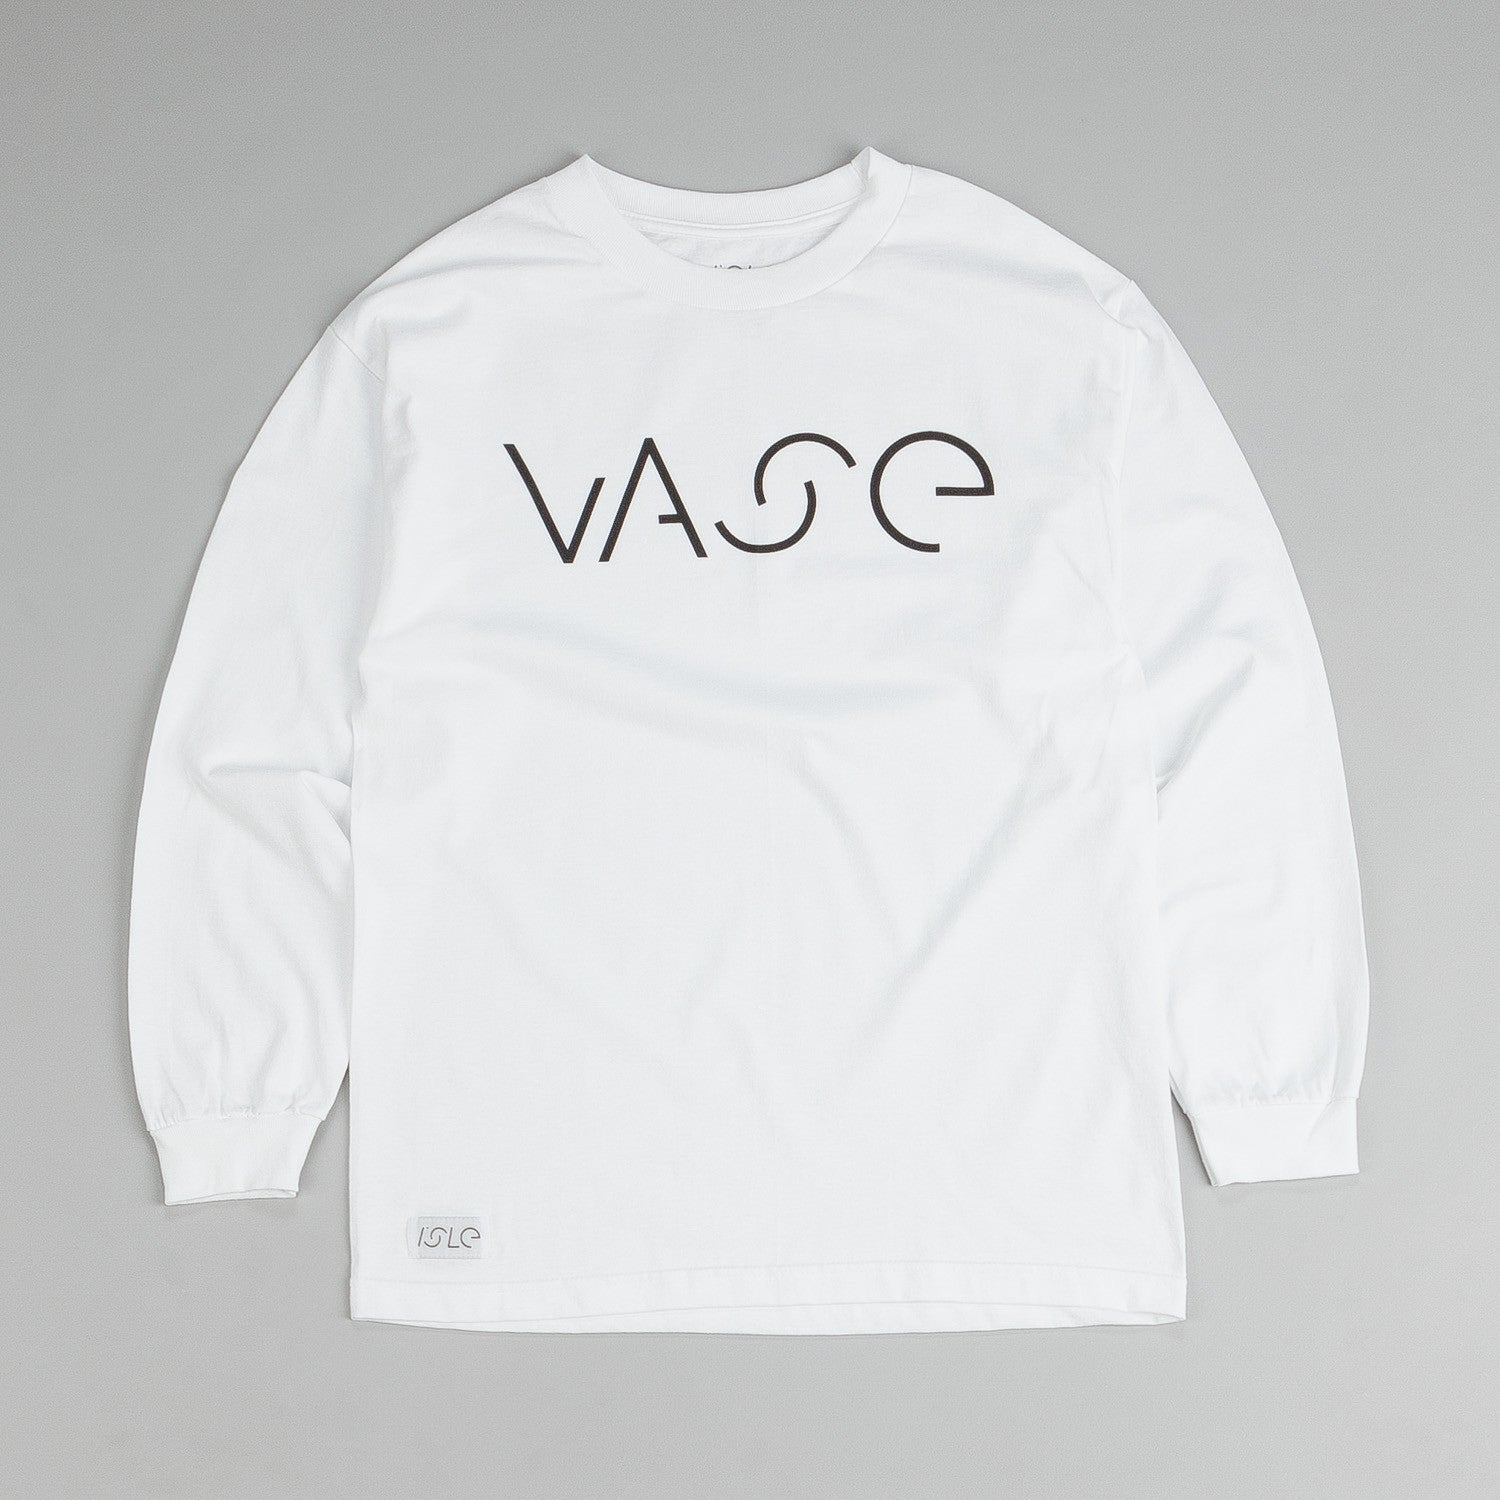 Isle Long Sleeve T Shirt Vase White